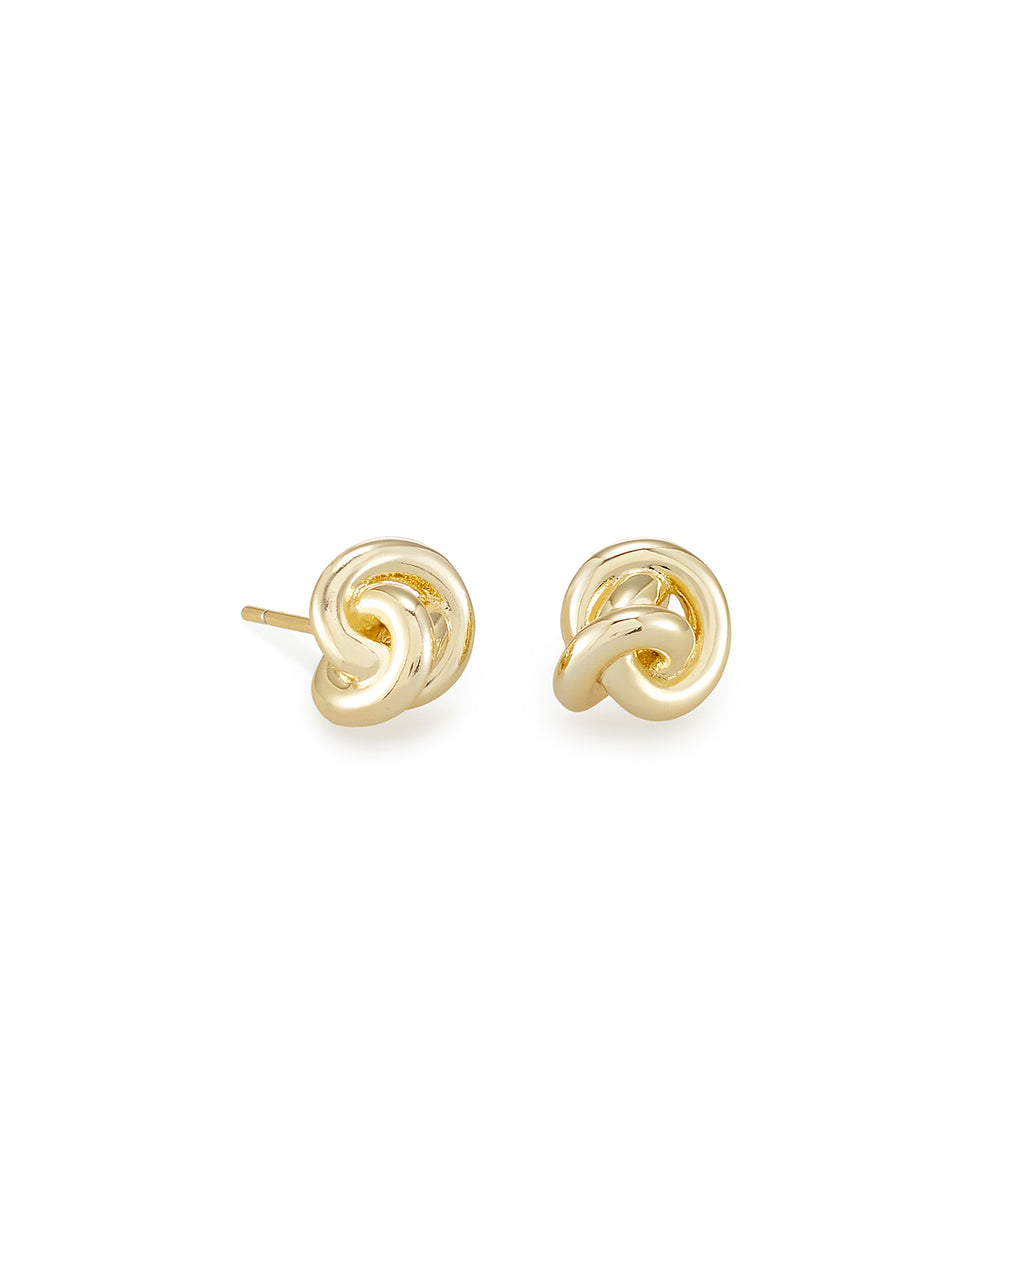 Presleigh Love Knot Stud Earrings In Gold